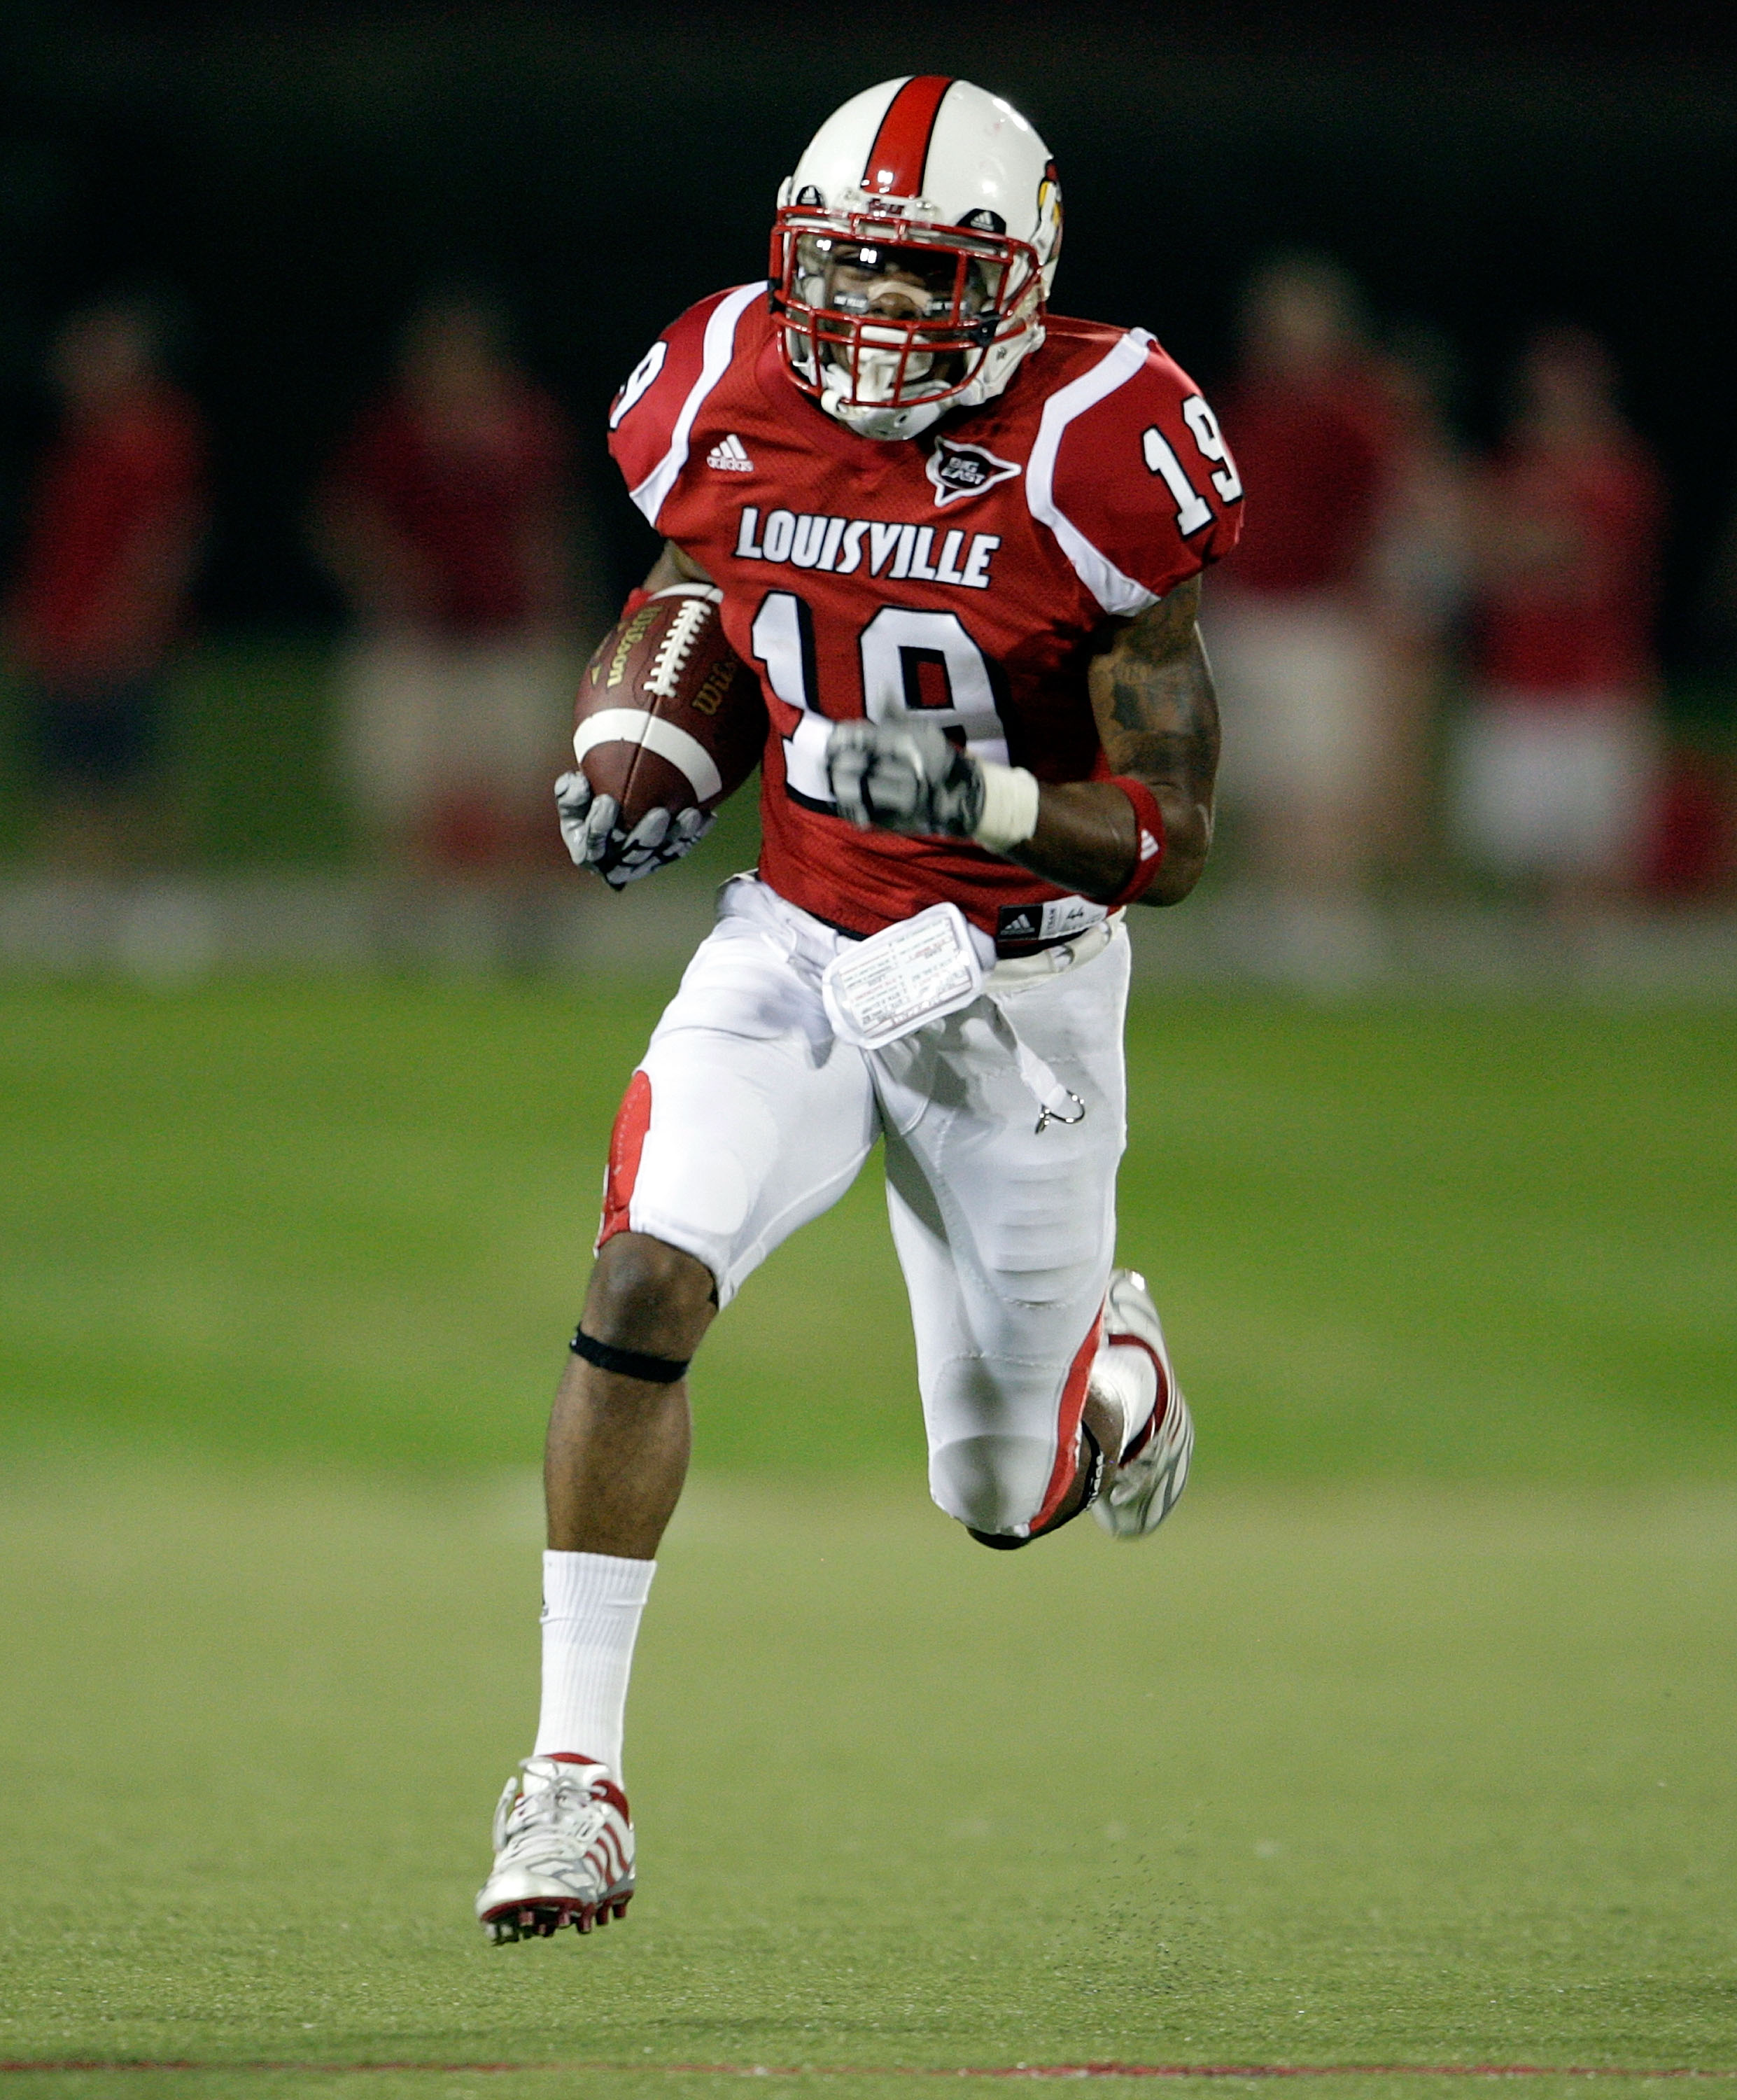 LOUISVILLE, KY - SEPTEMBER 05:  Johnny Patrick #19 of the Louisville Cardinals runs with the balll after intercepting a pass during the game against the Indiana State Sycamores at Papa John's Cardinal Stadium on September 5, 2009 in Louisville, Kentucky.